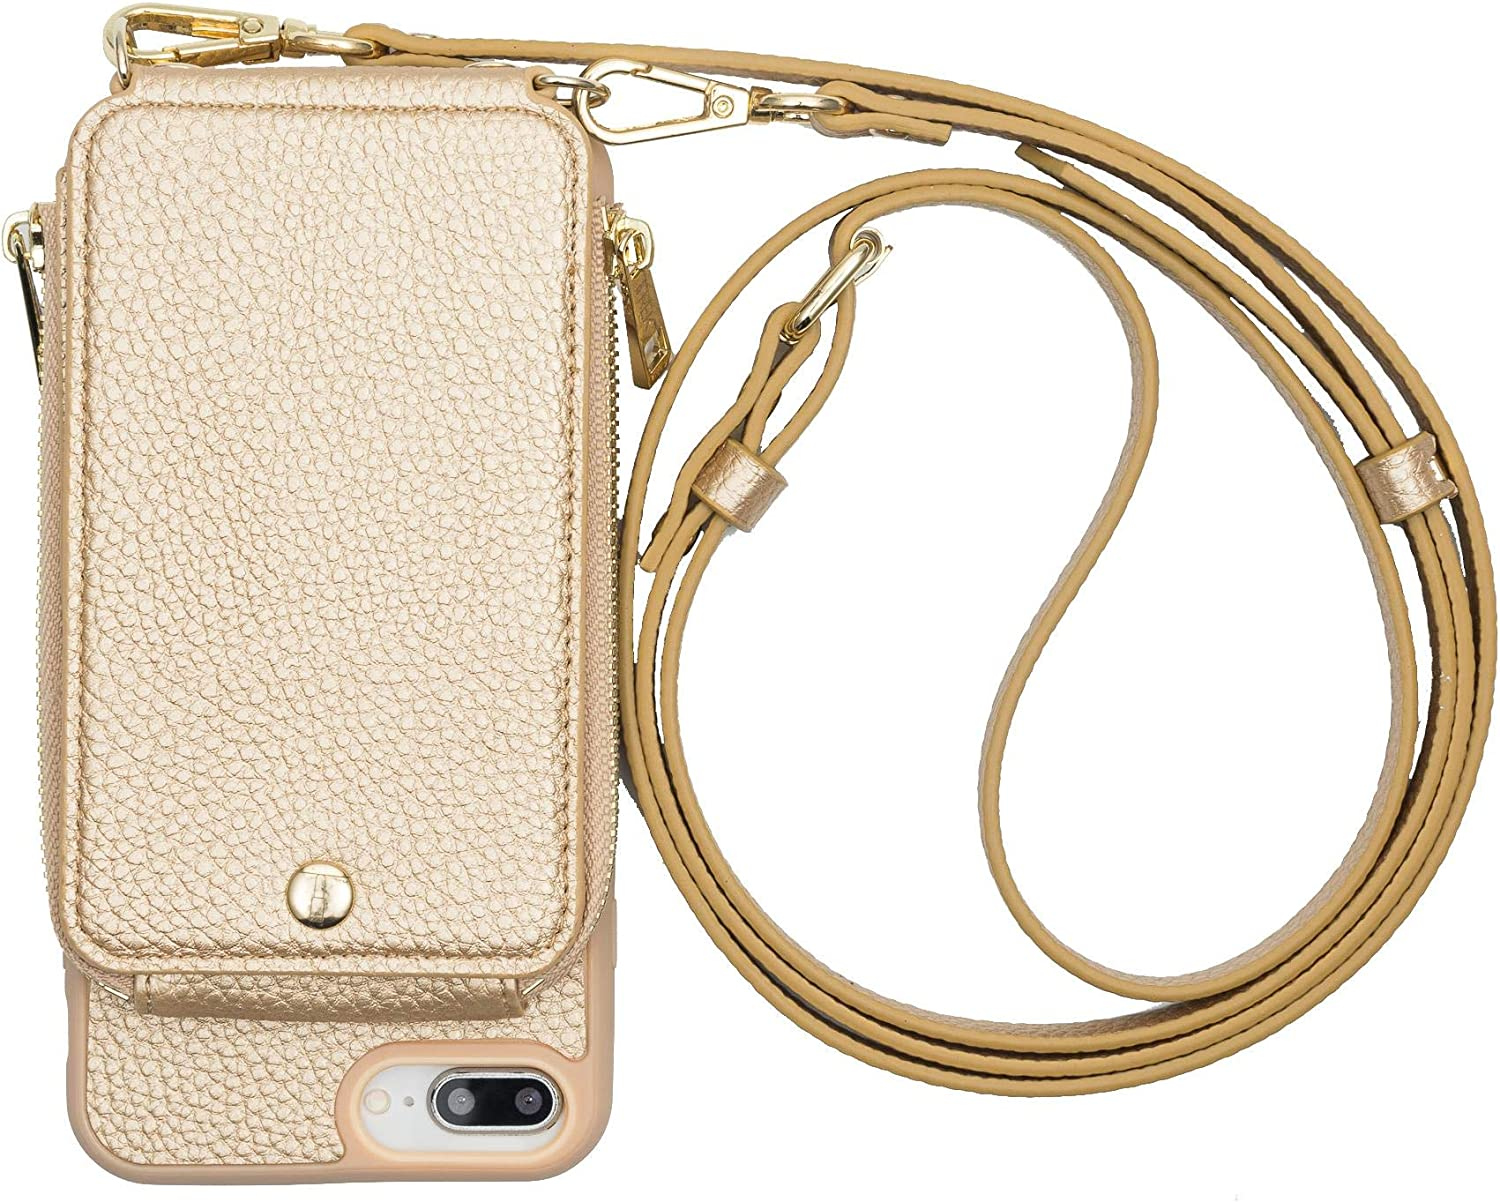 Today's only Ranking TOP8 Trek Tech All-in-One Crossbody Phone for Wallet and iPhone Case